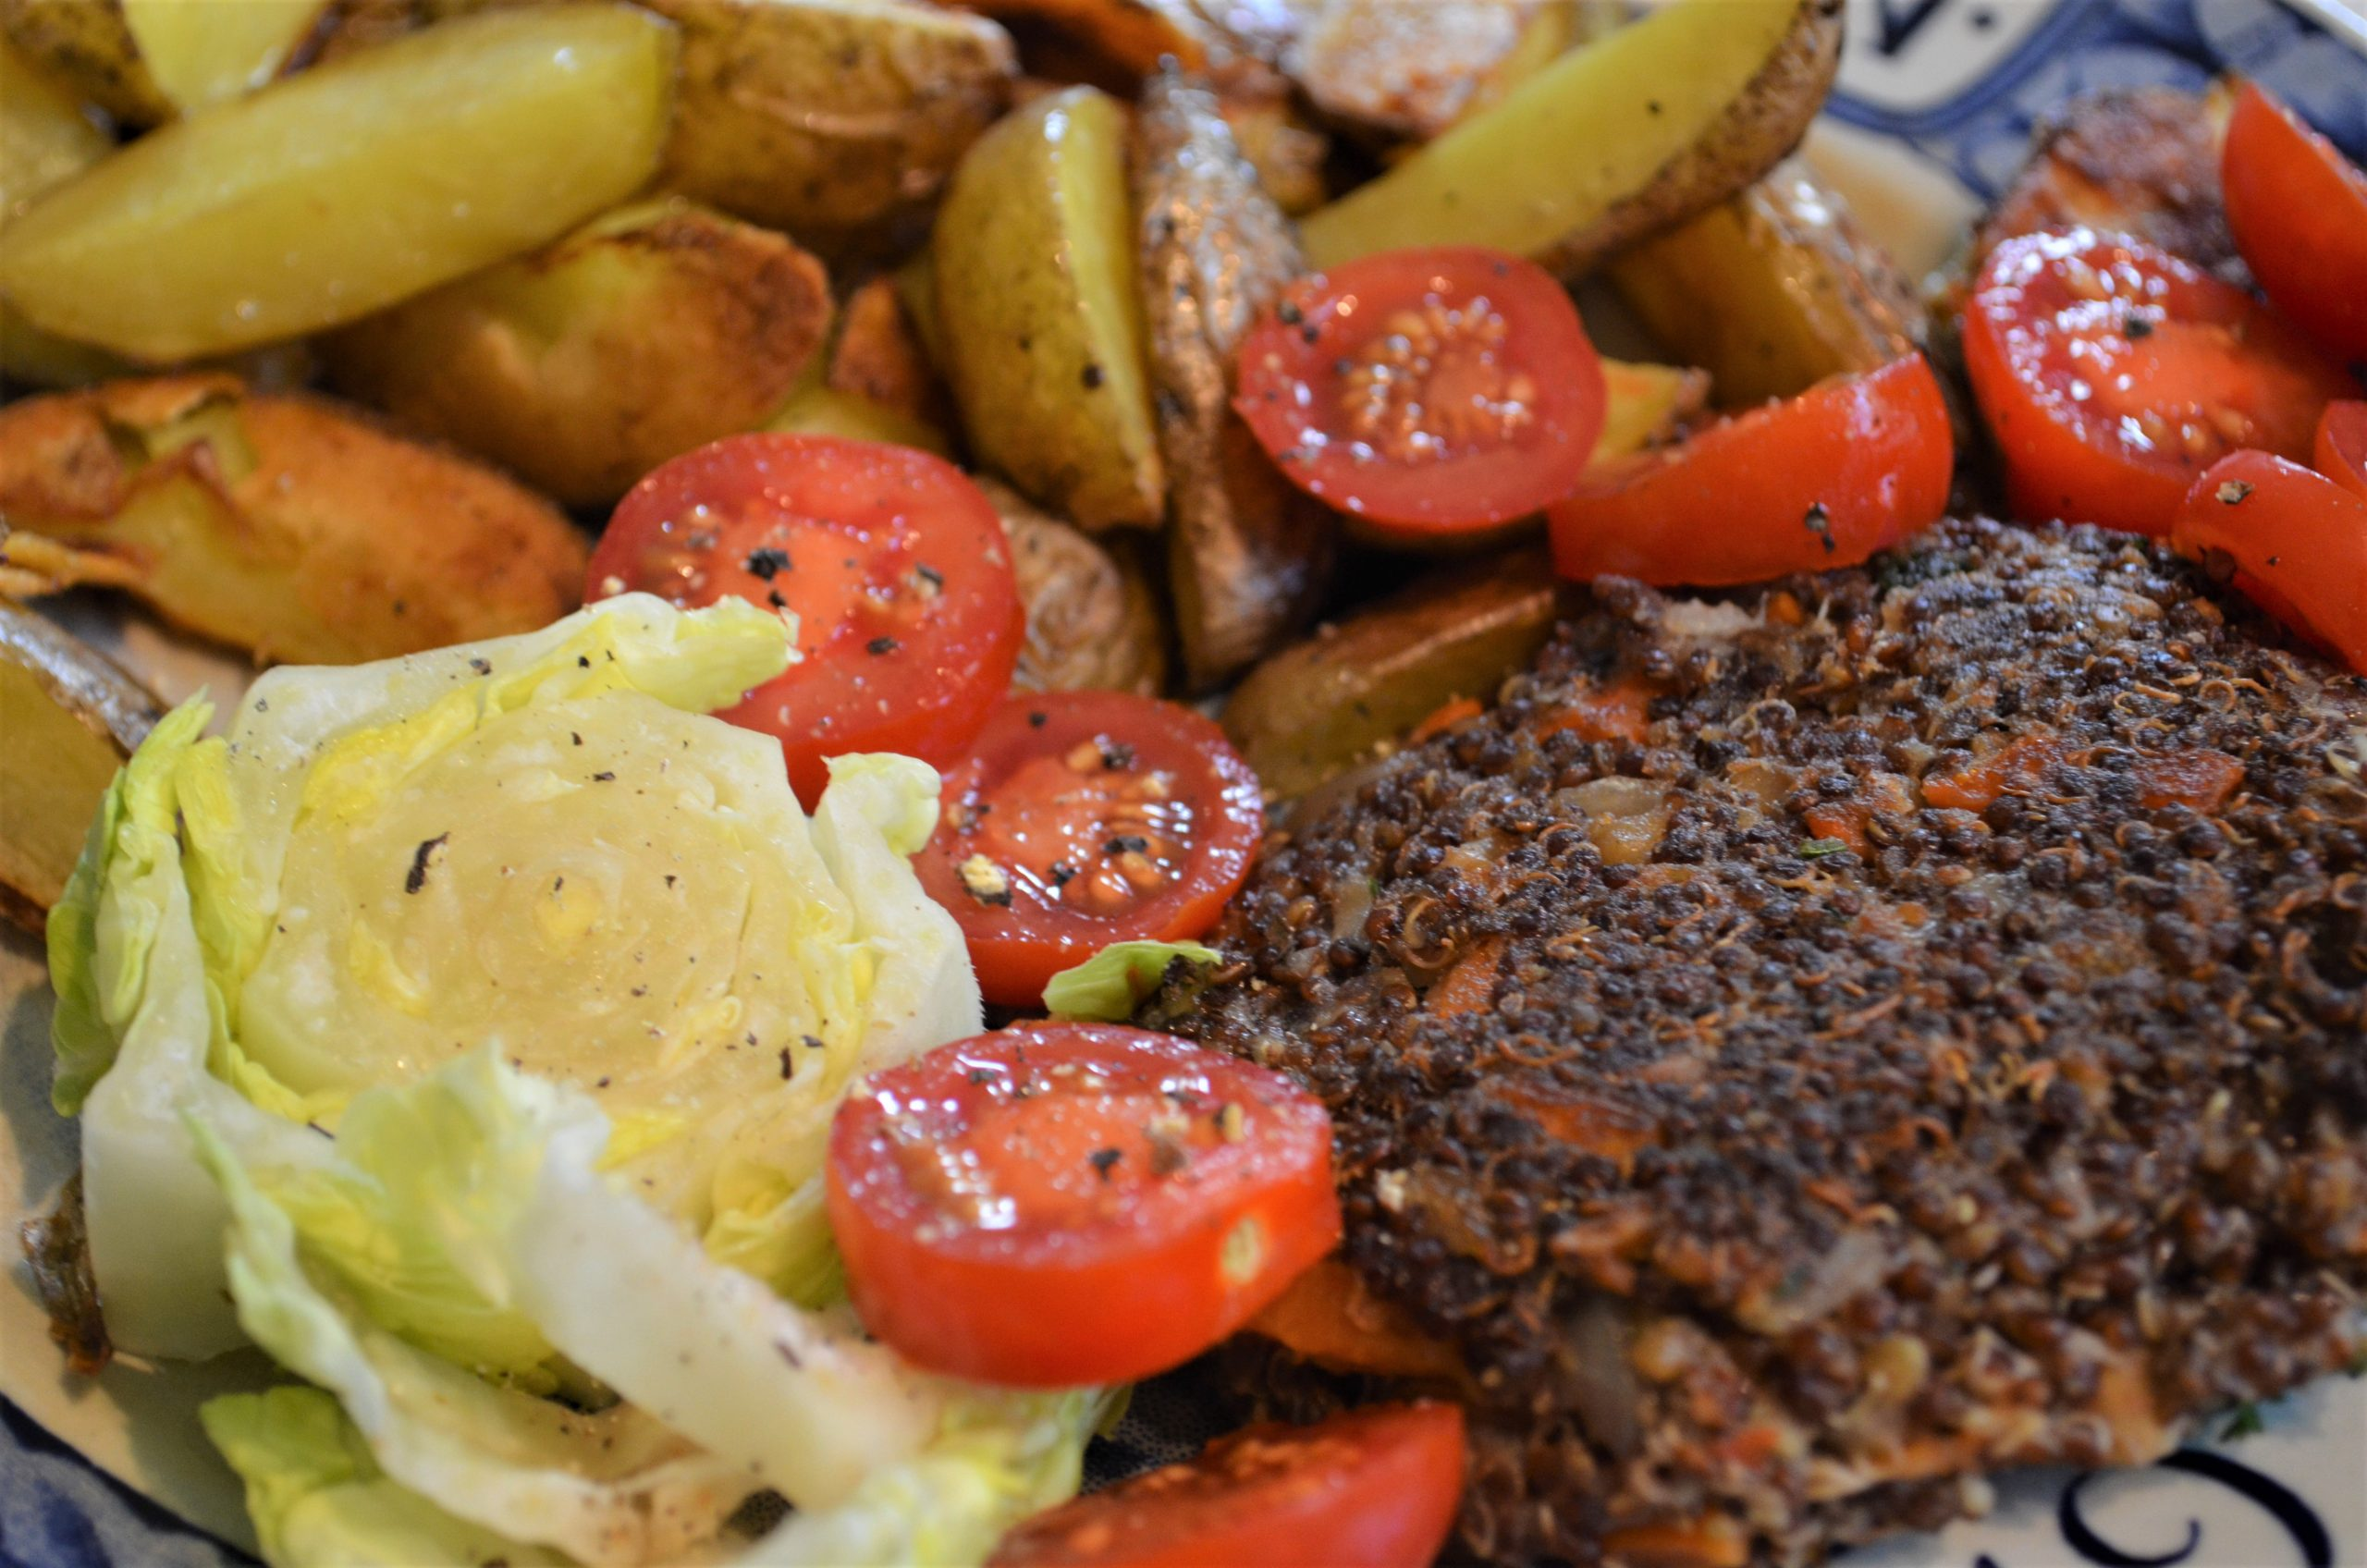 Burger patty, chopped tomatoes, cabbage, and green vegetables